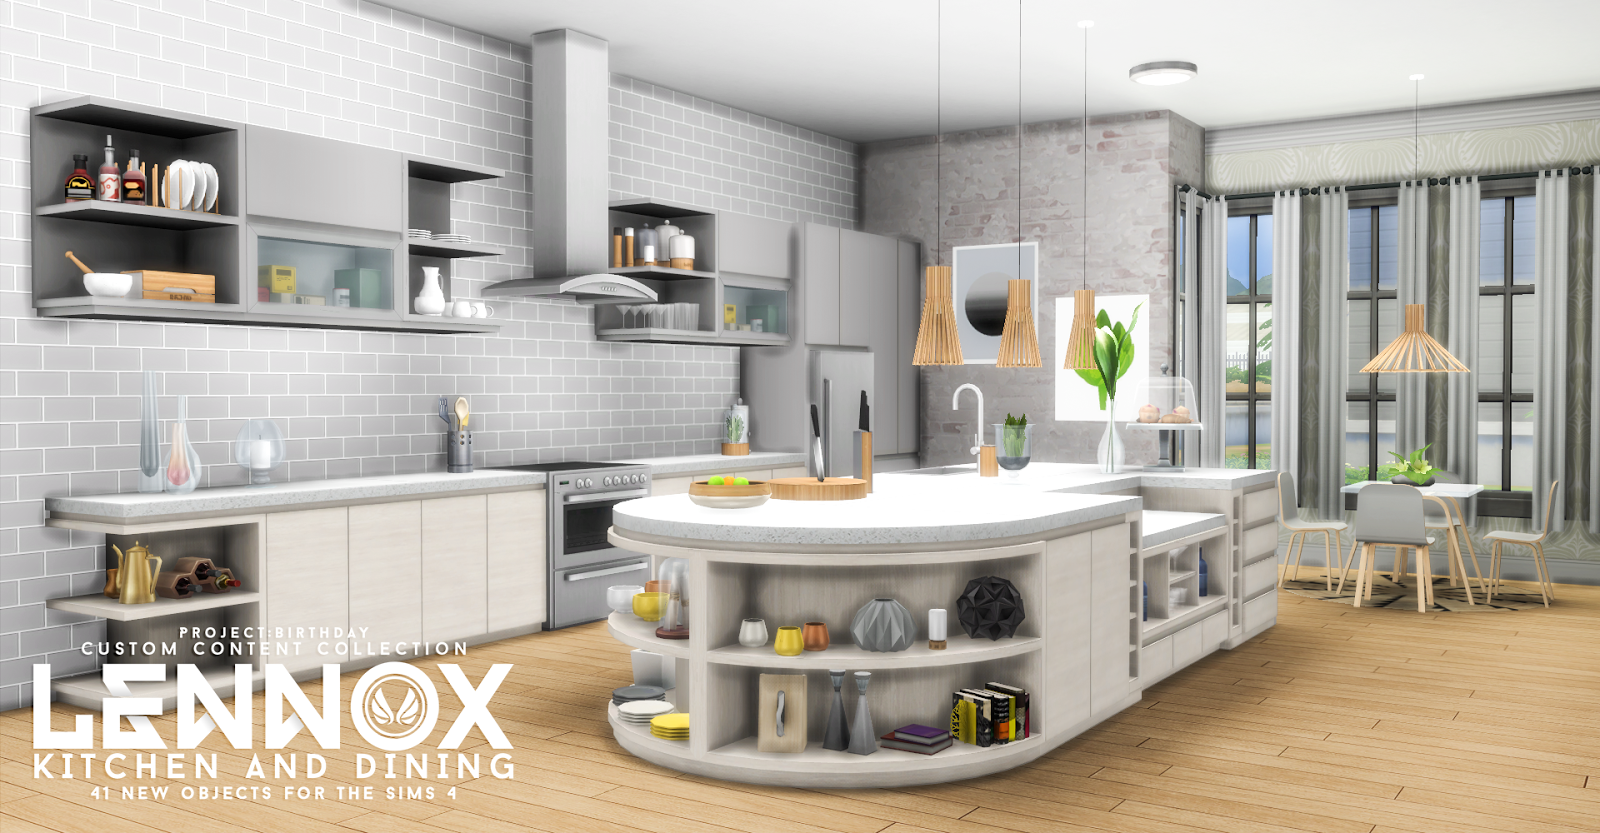 Sims 3 Küche Modern Sims 4 Cc 39s The Best Lennox Kitchen And Dining Set By